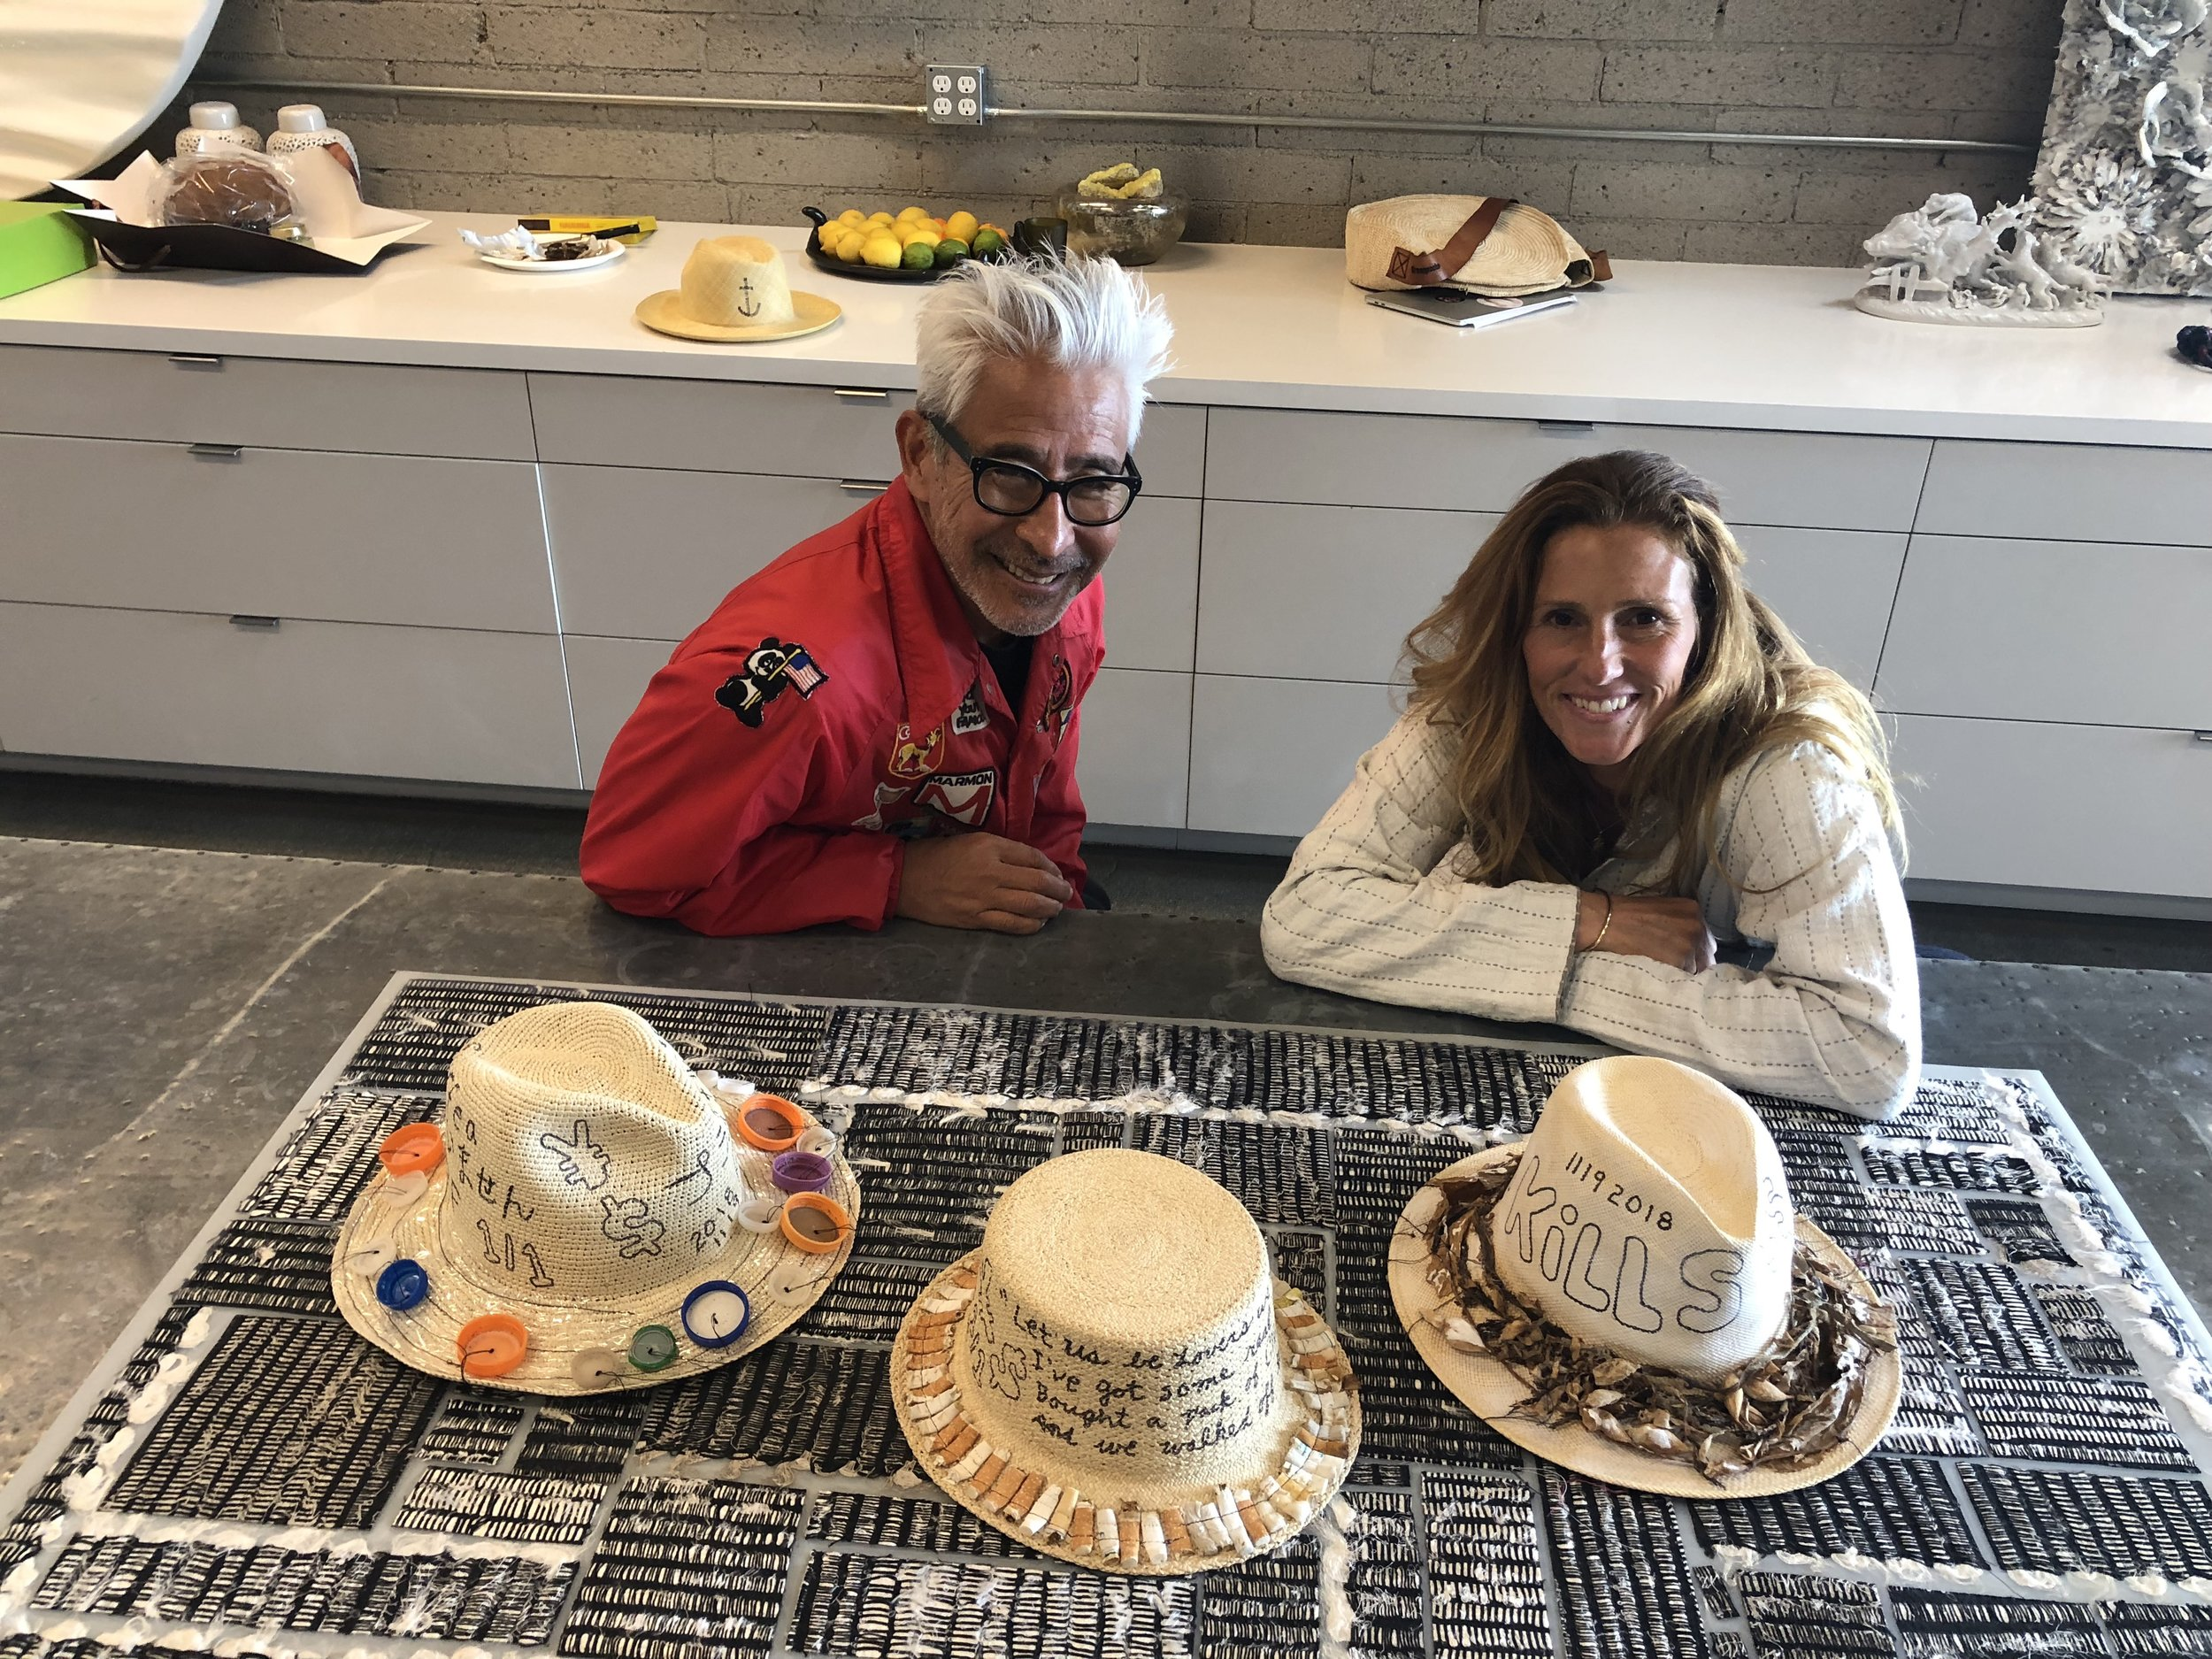 Yoki alongside Florencia, founder of Greenpacha, with his creations. You can find the collaboration at Amaree's in New Port, California.